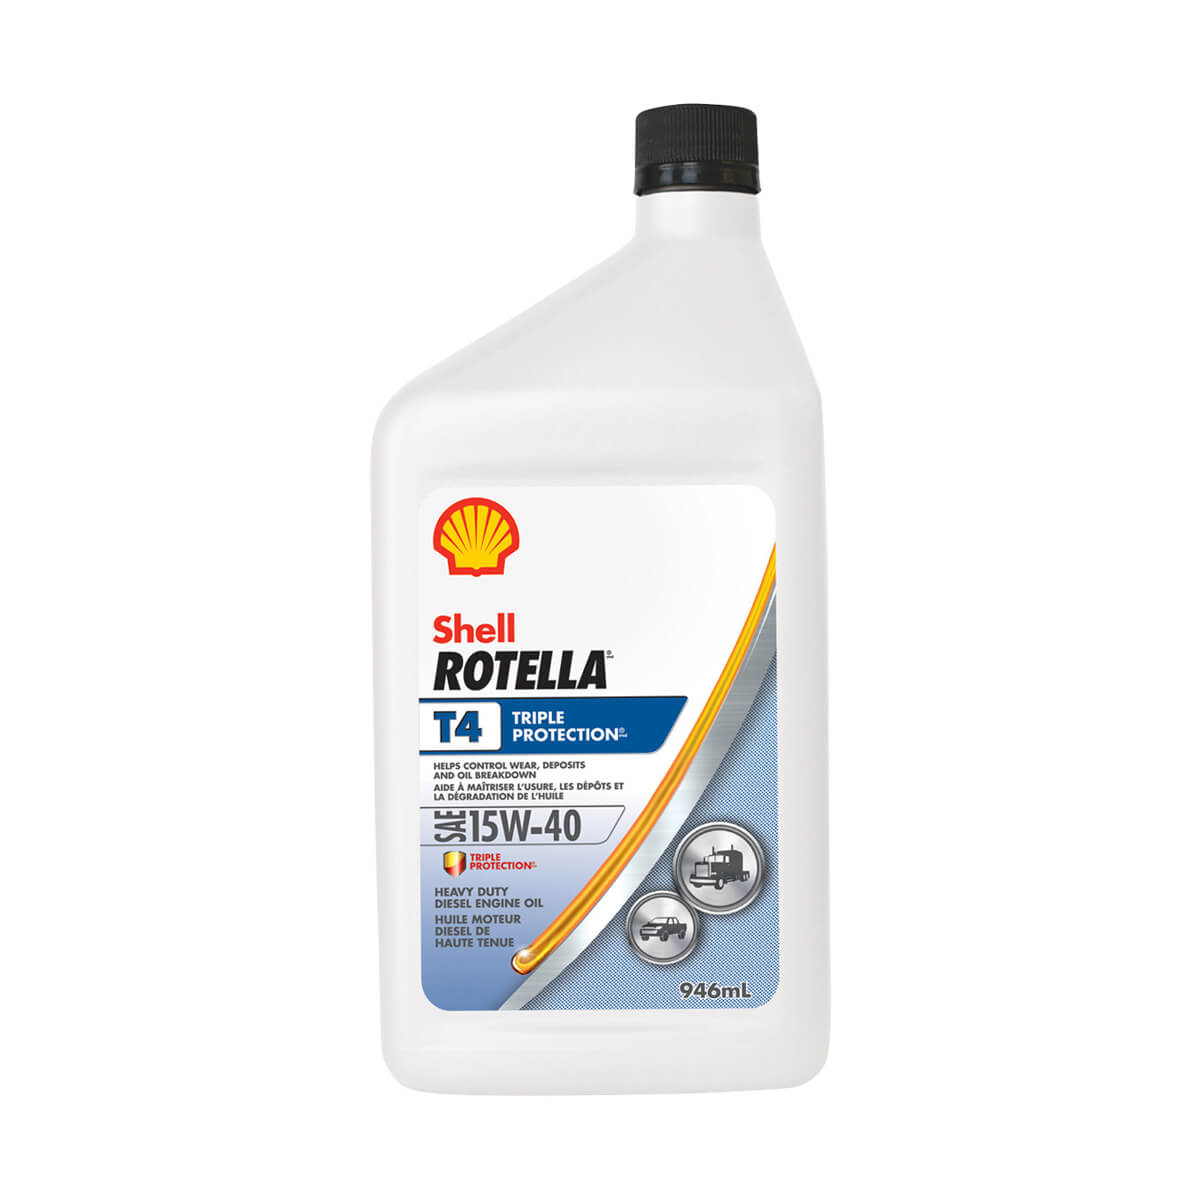 Shell Rotella T4 Triple Protection 15W-40 - 946 ml